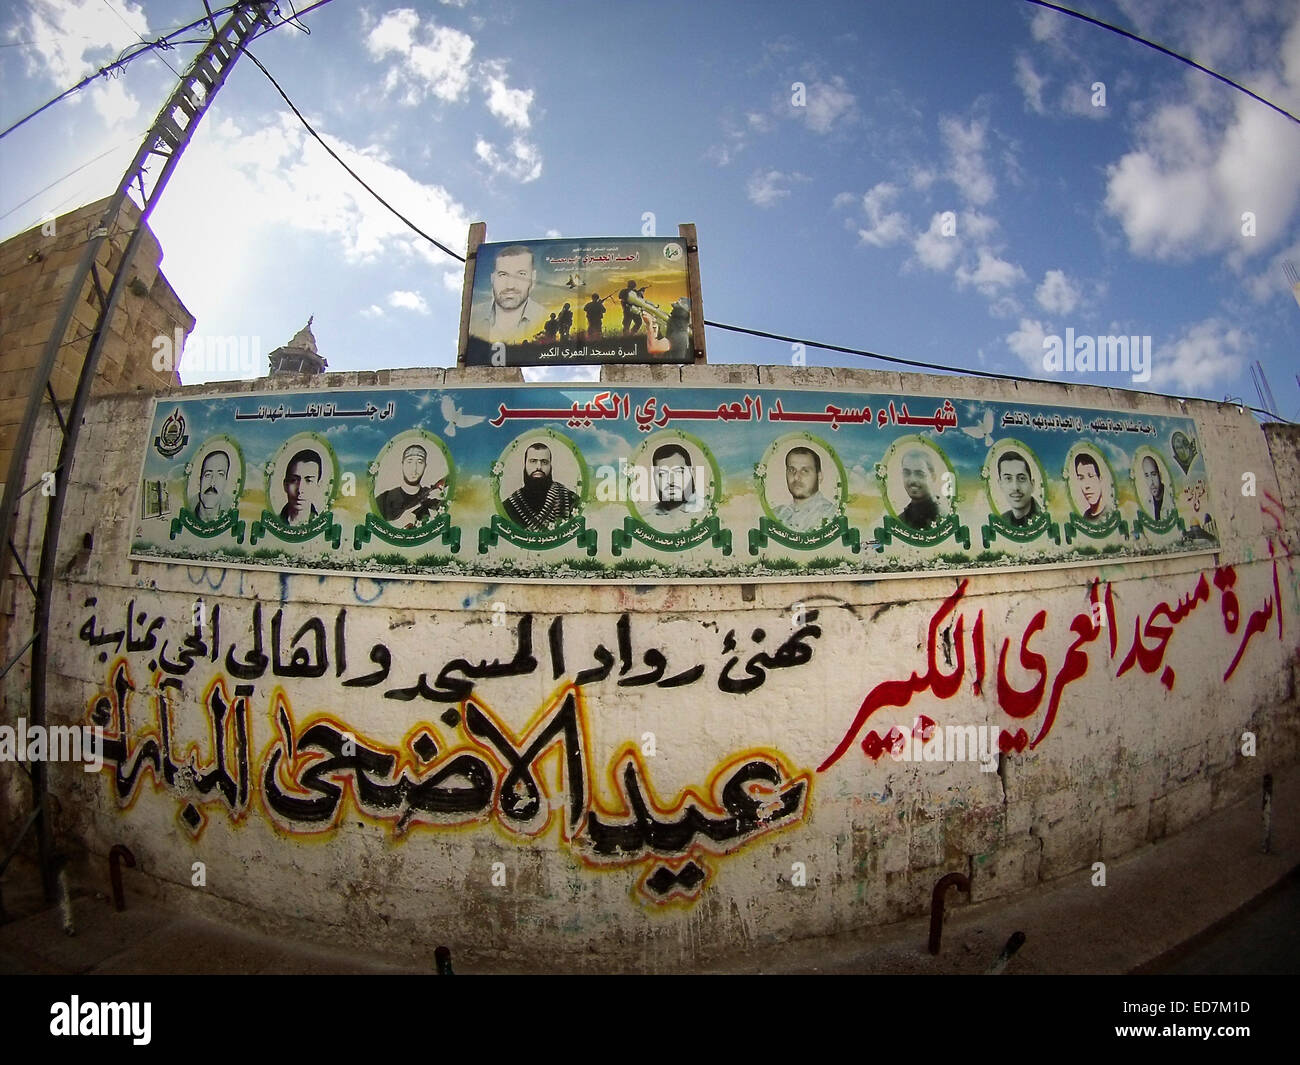 Martyrs on posters in Gaza Old City, Gaza Strip, Palestinian Territories. - Stock Image